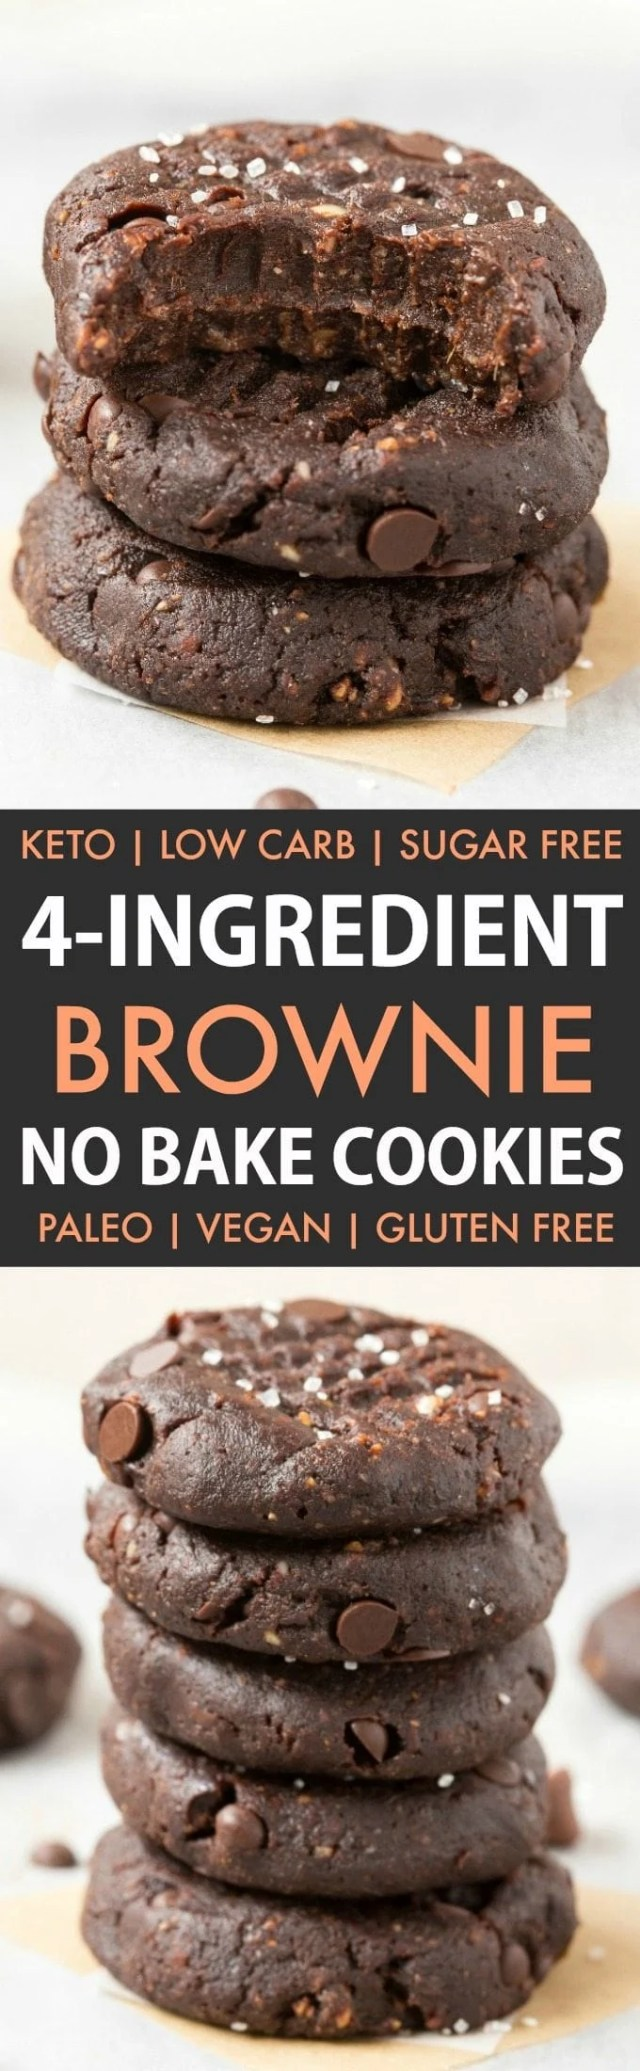 4-Ingredient No Bake Brownie Cookies in a collage